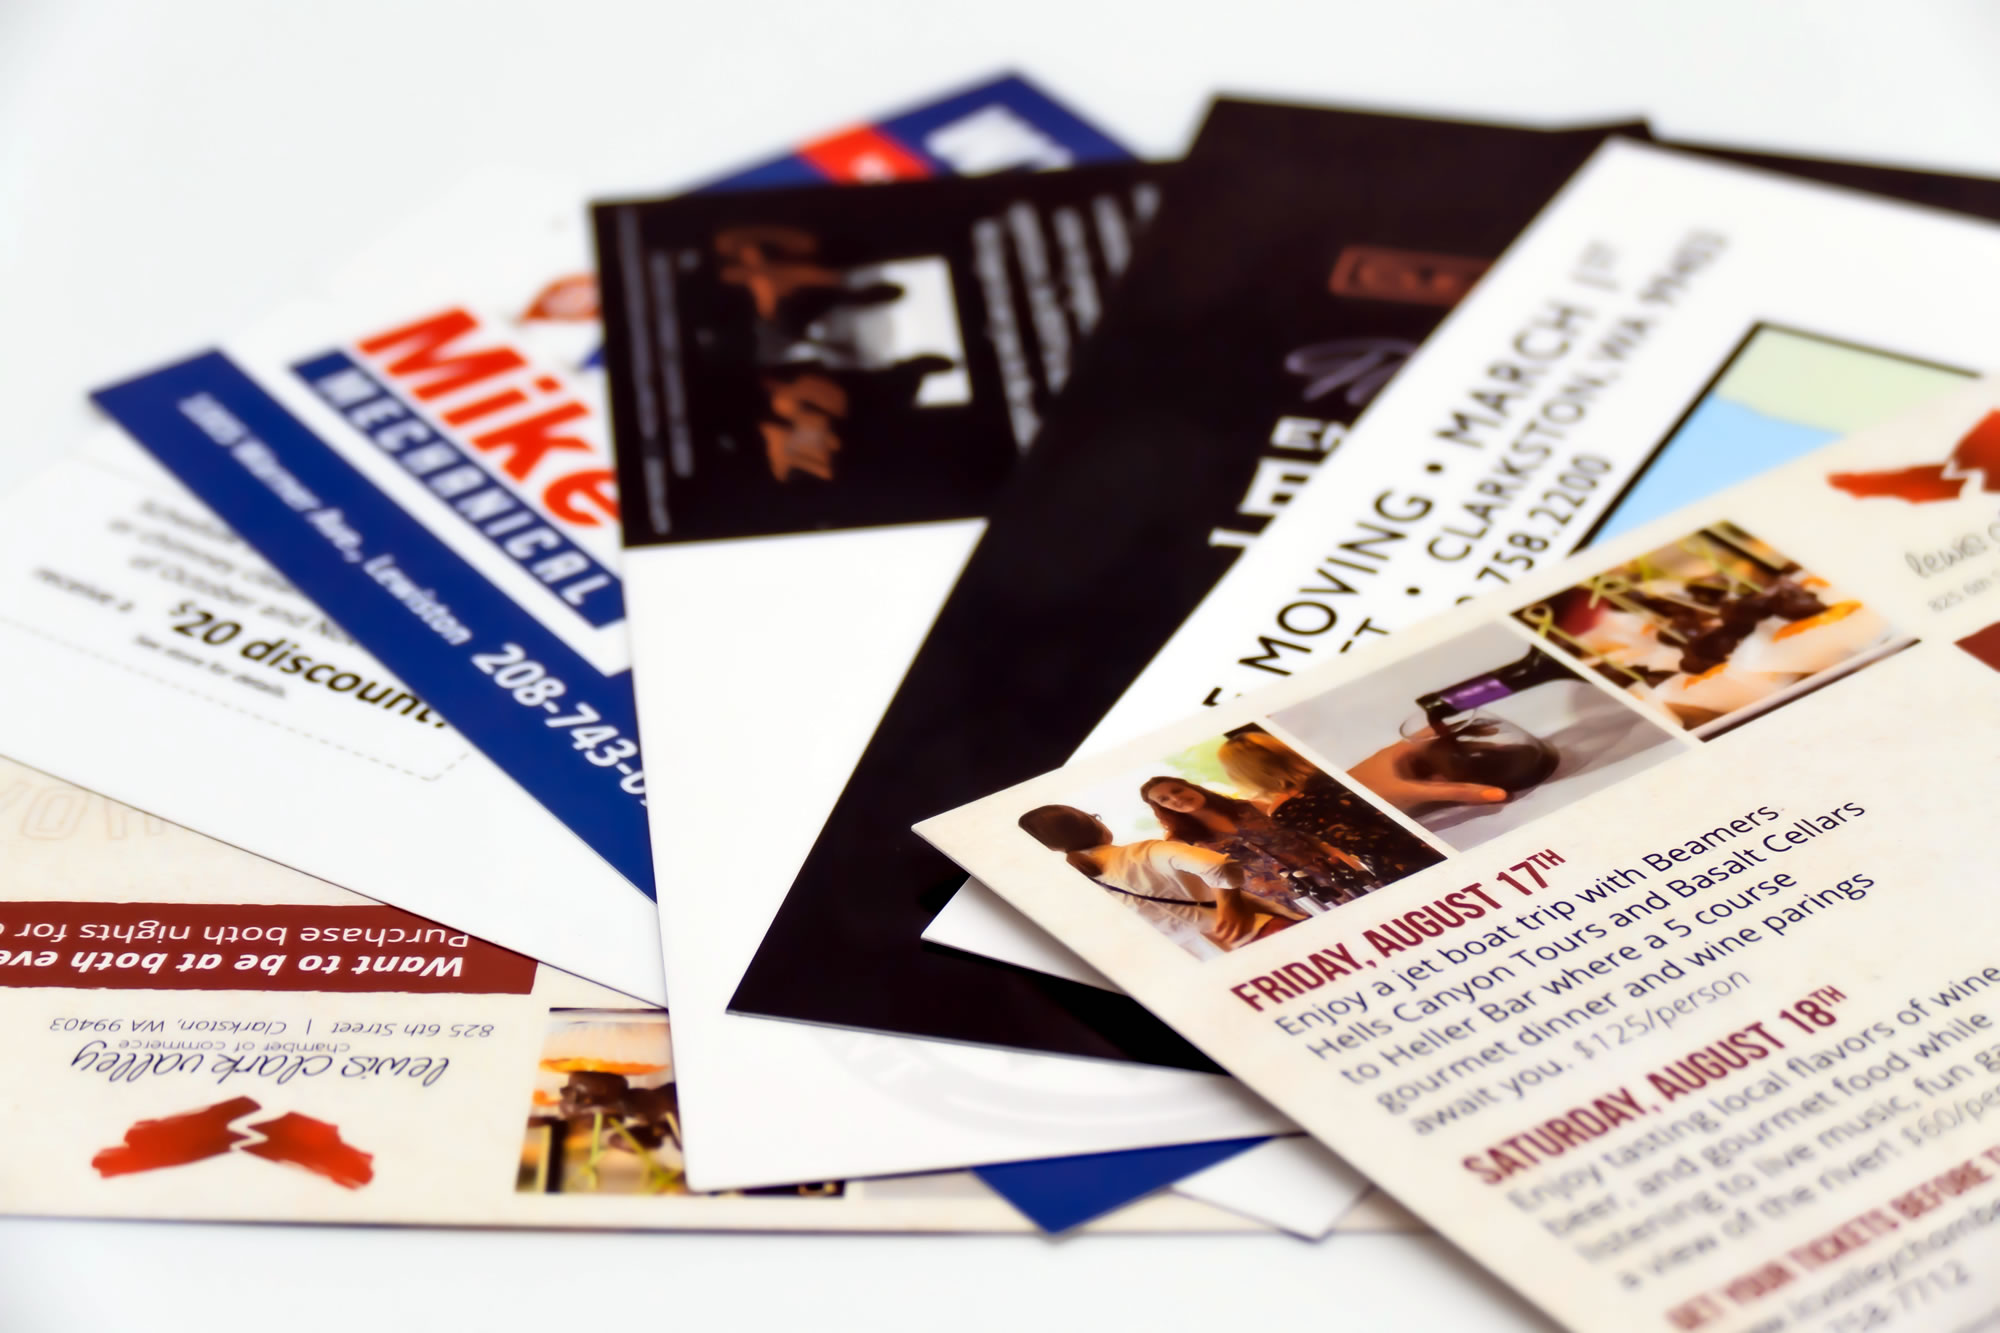 Recently produced direct mail postcards